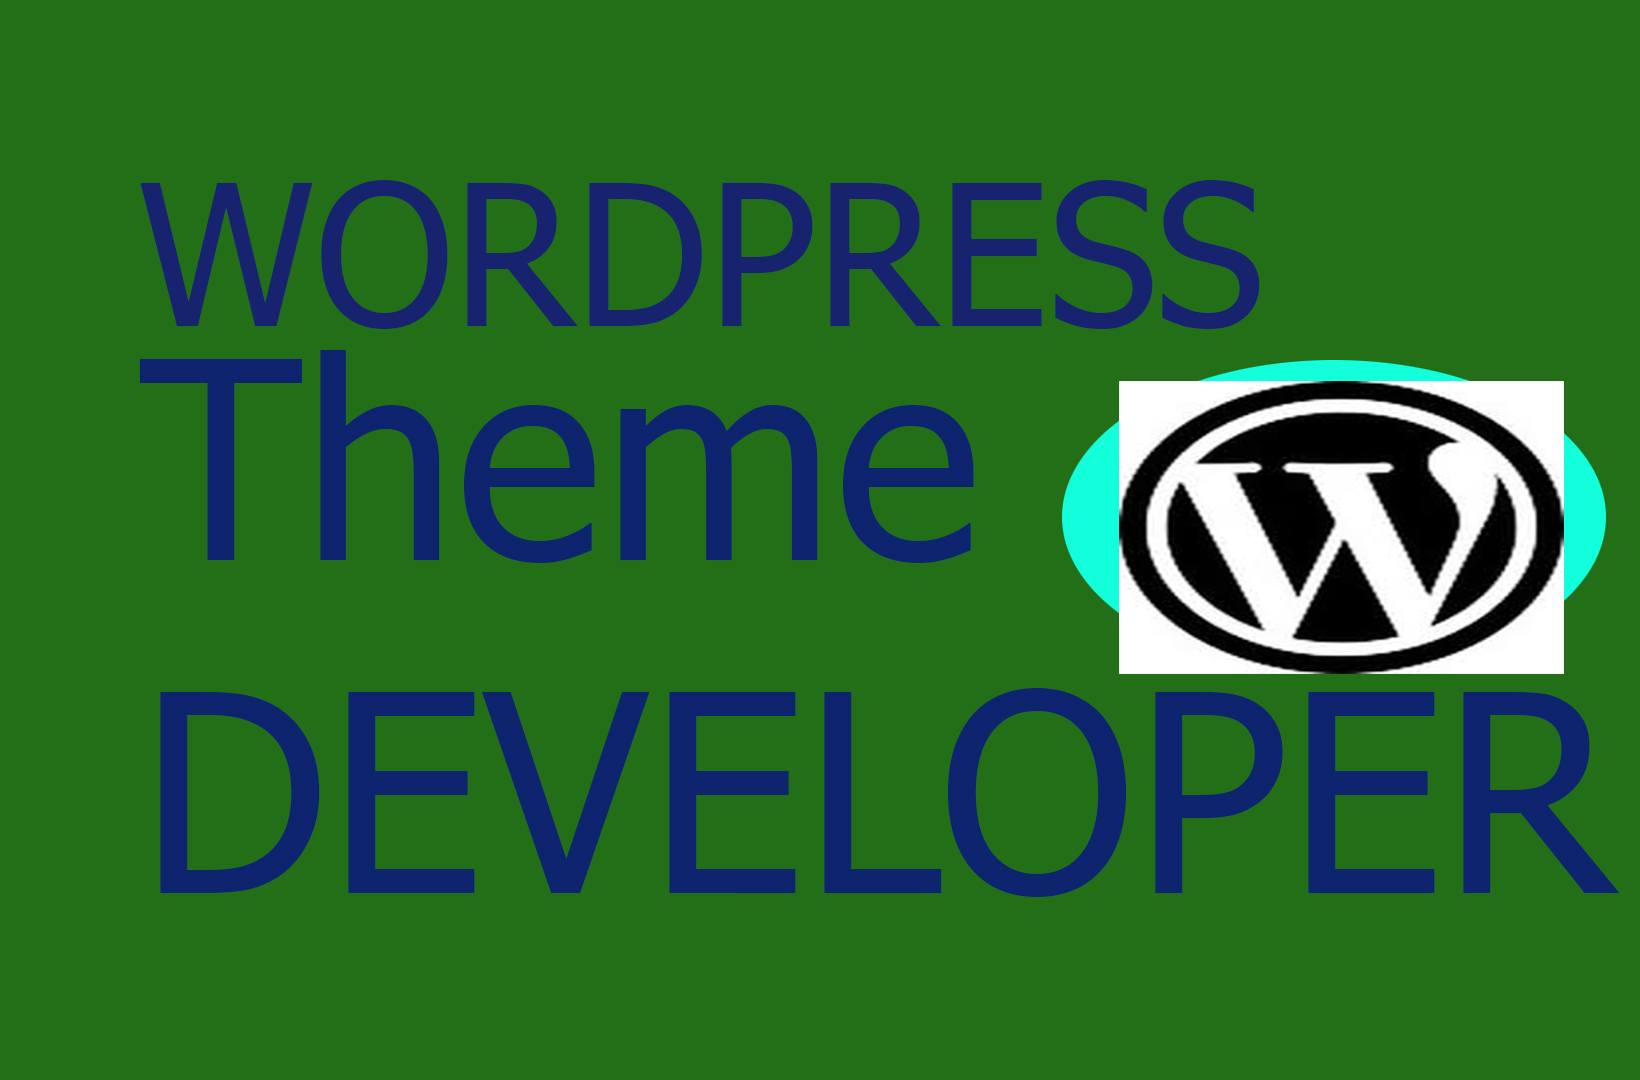 Fix WordPress issue, WordPress design